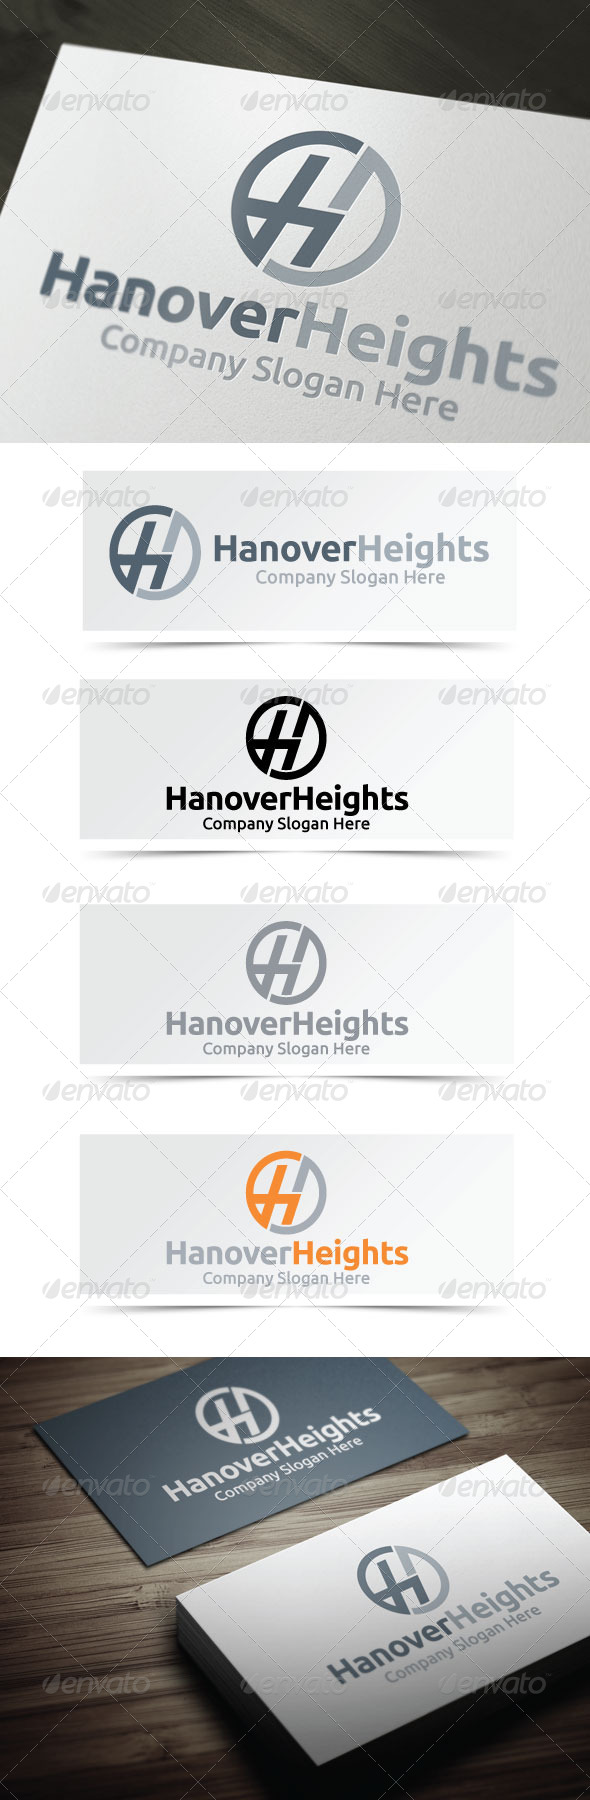 Hanover Heights - Letters Logo Templates